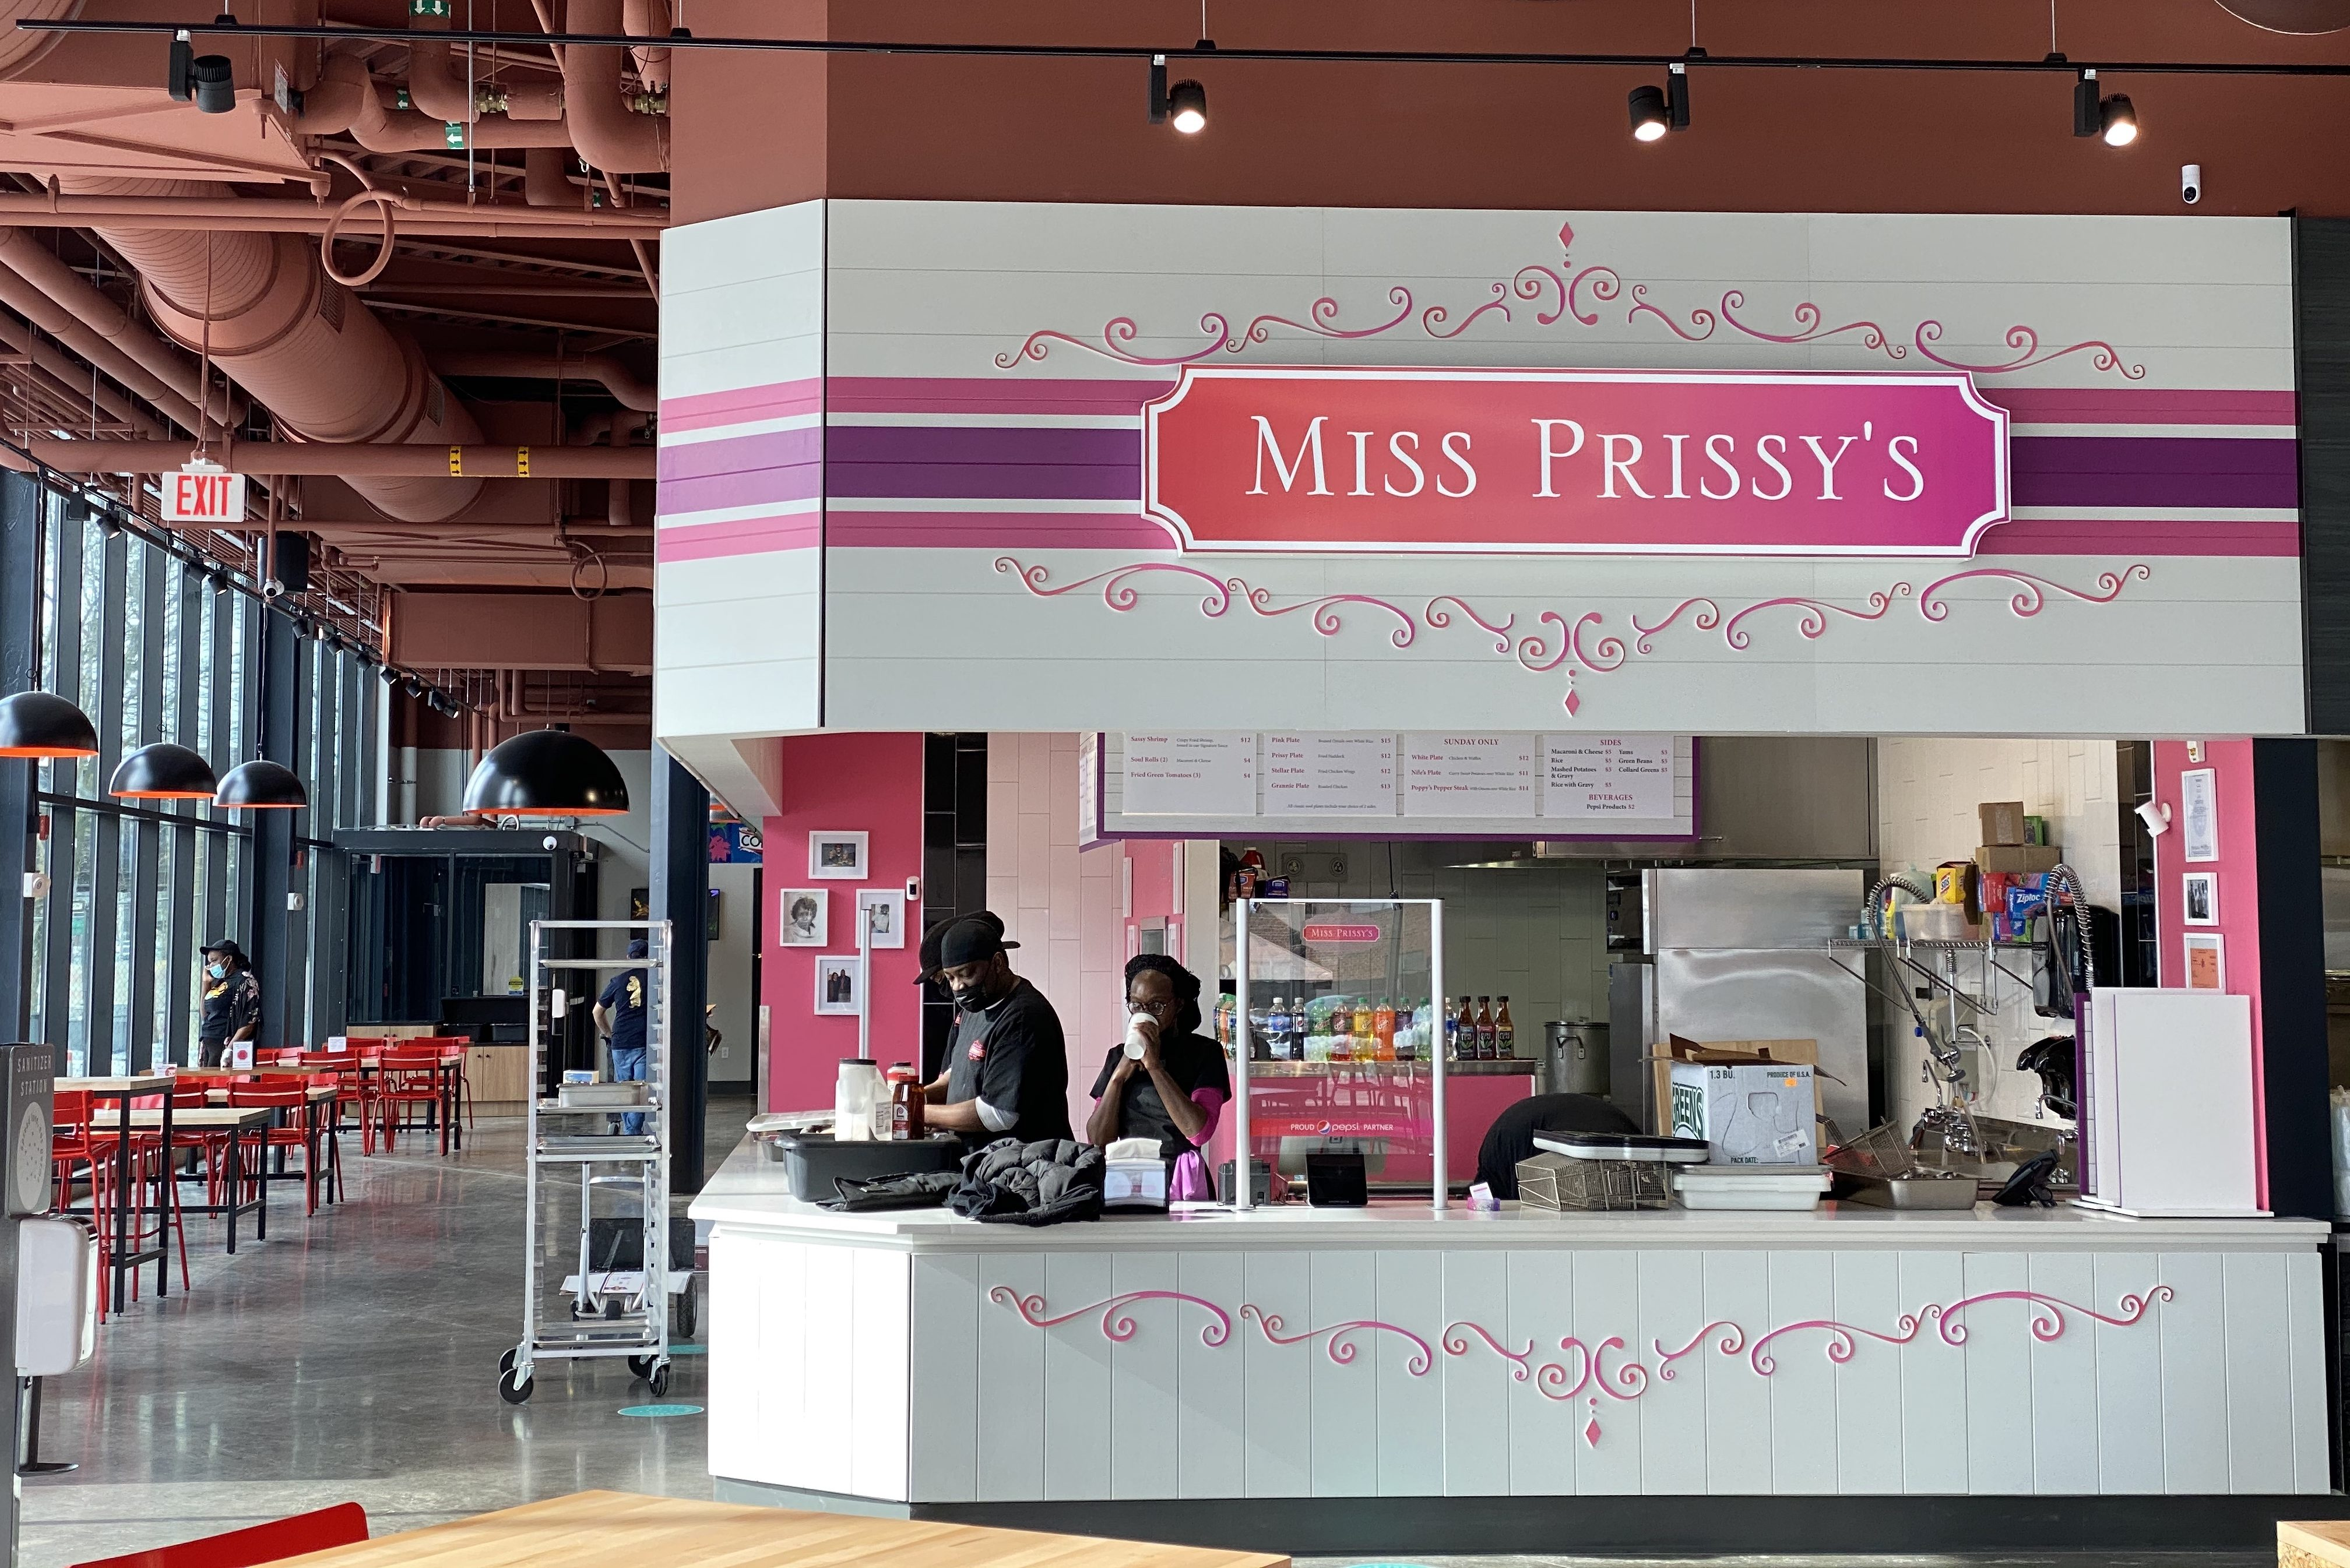 Miss Prissy's is one of many vendors located at Salty City Market in Syracuse.